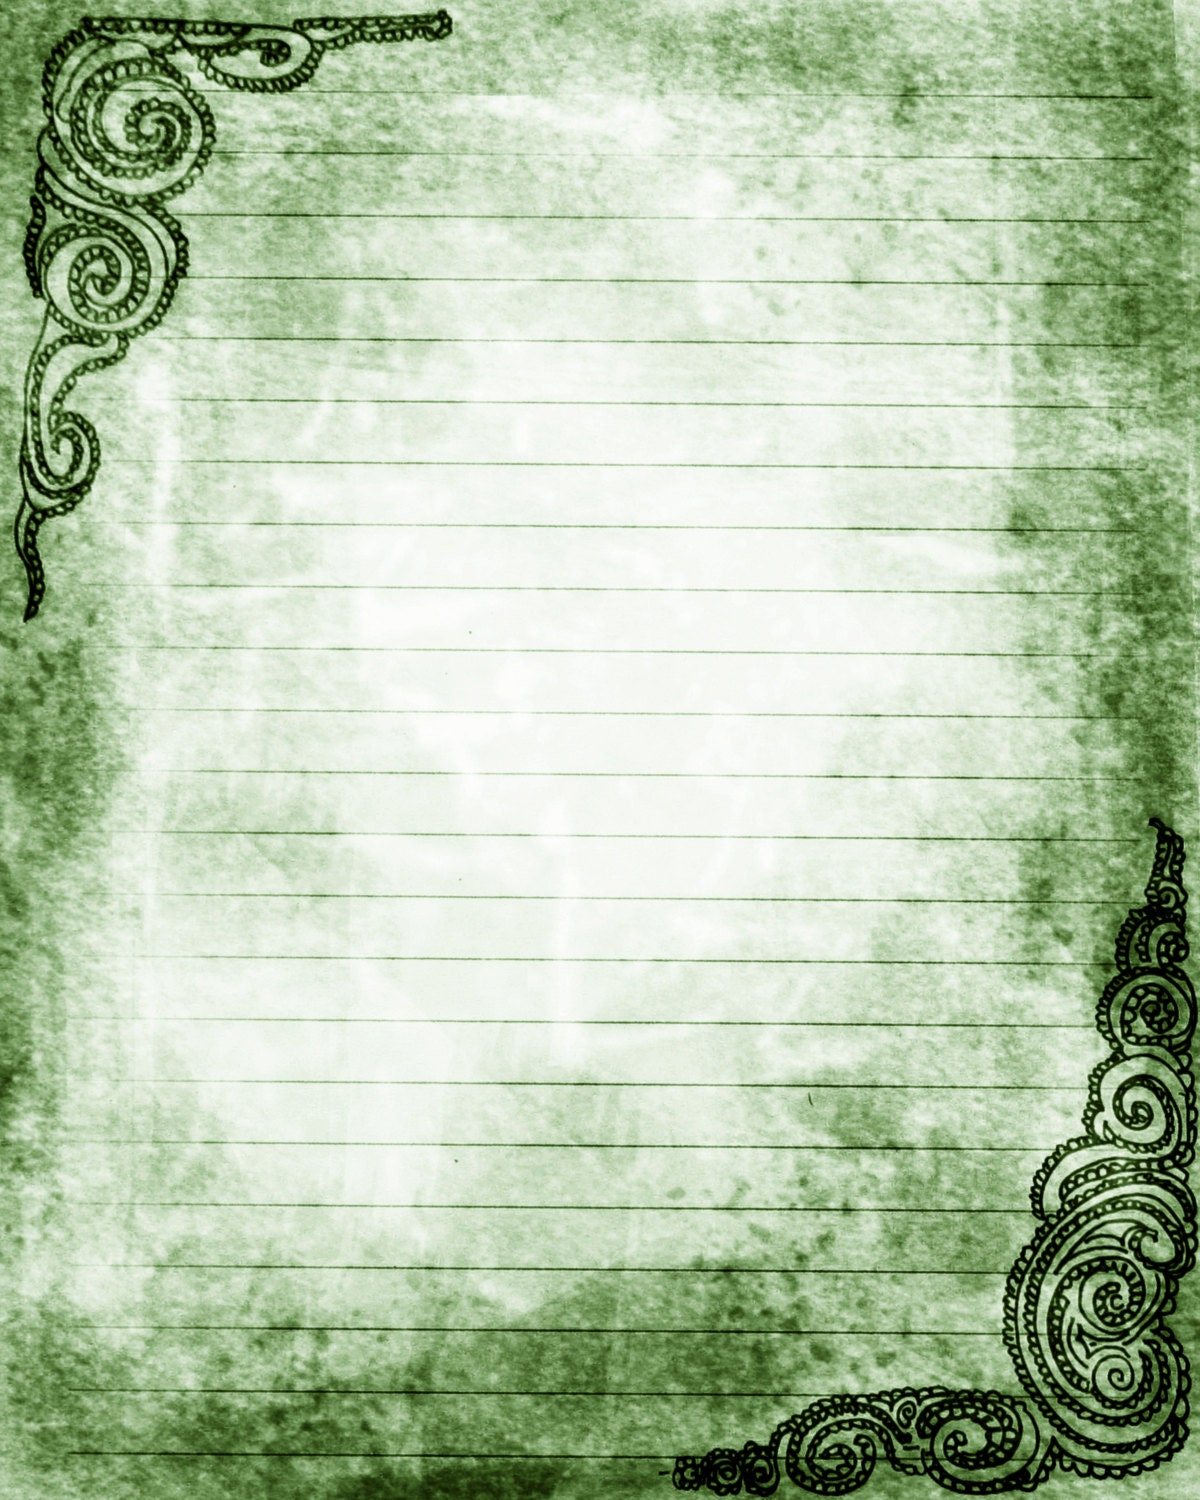 Wallpaper Lined Paper: Printable Journal Page Swirls Green Lined Stationery 8 X 10